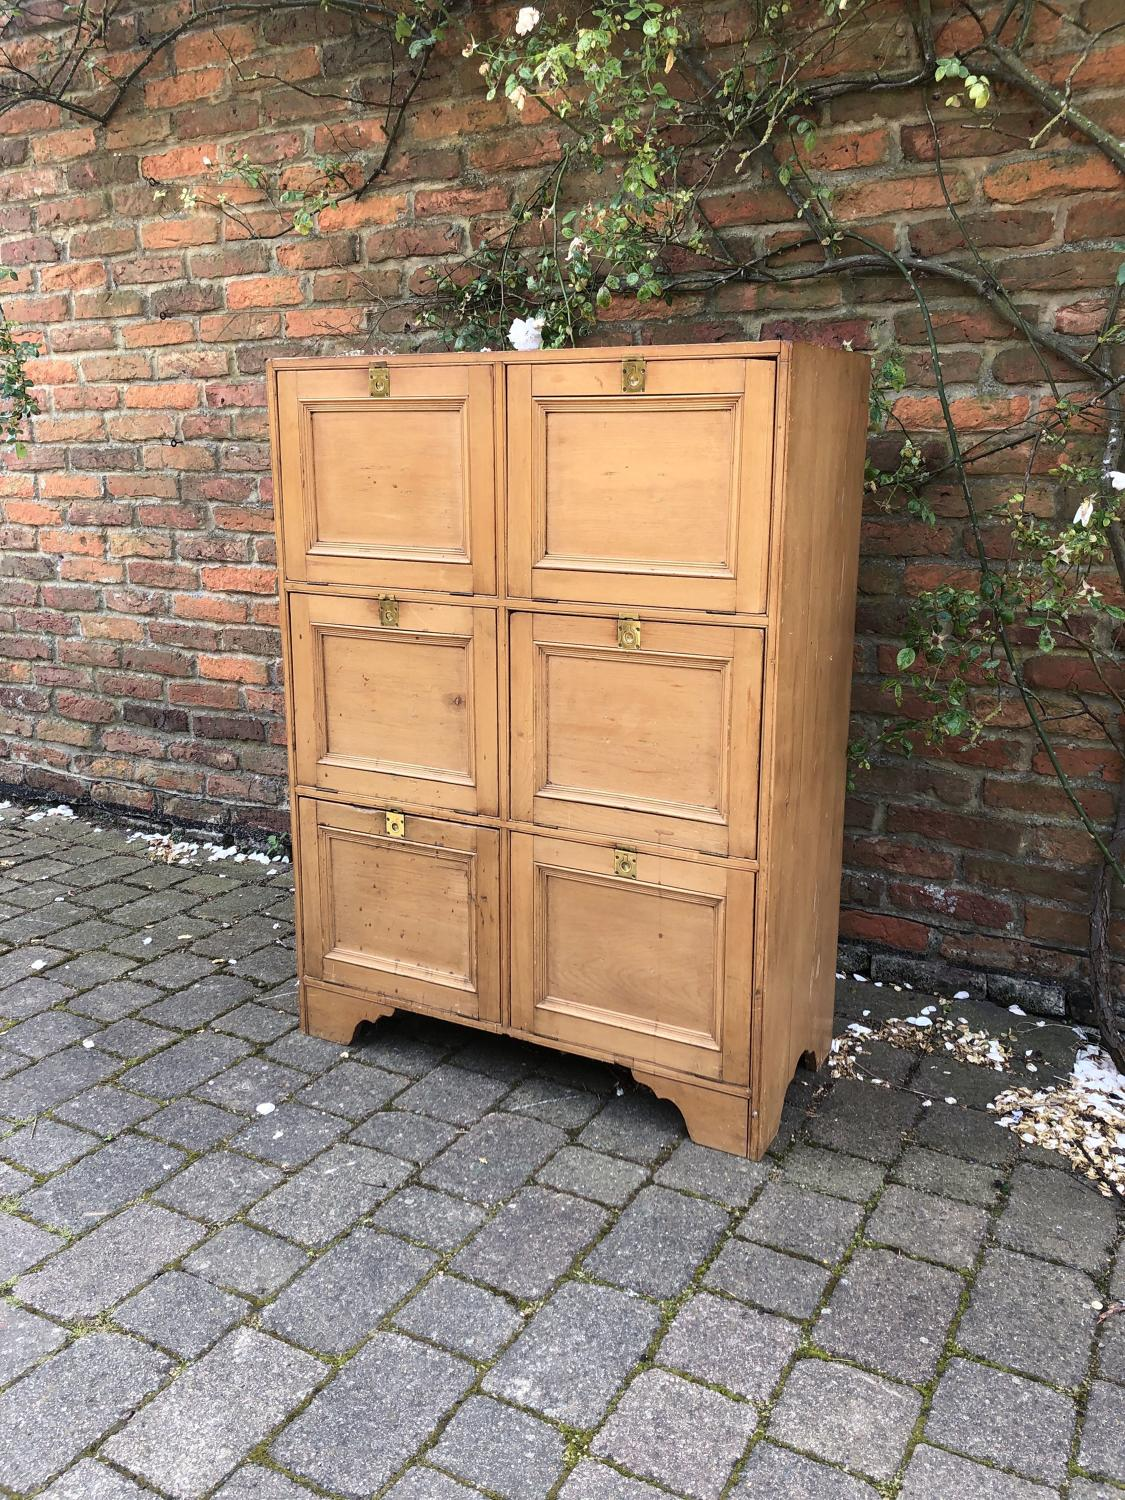 Early 20th Century Pine Locker Cupboard - Perfect for Shoe Storage